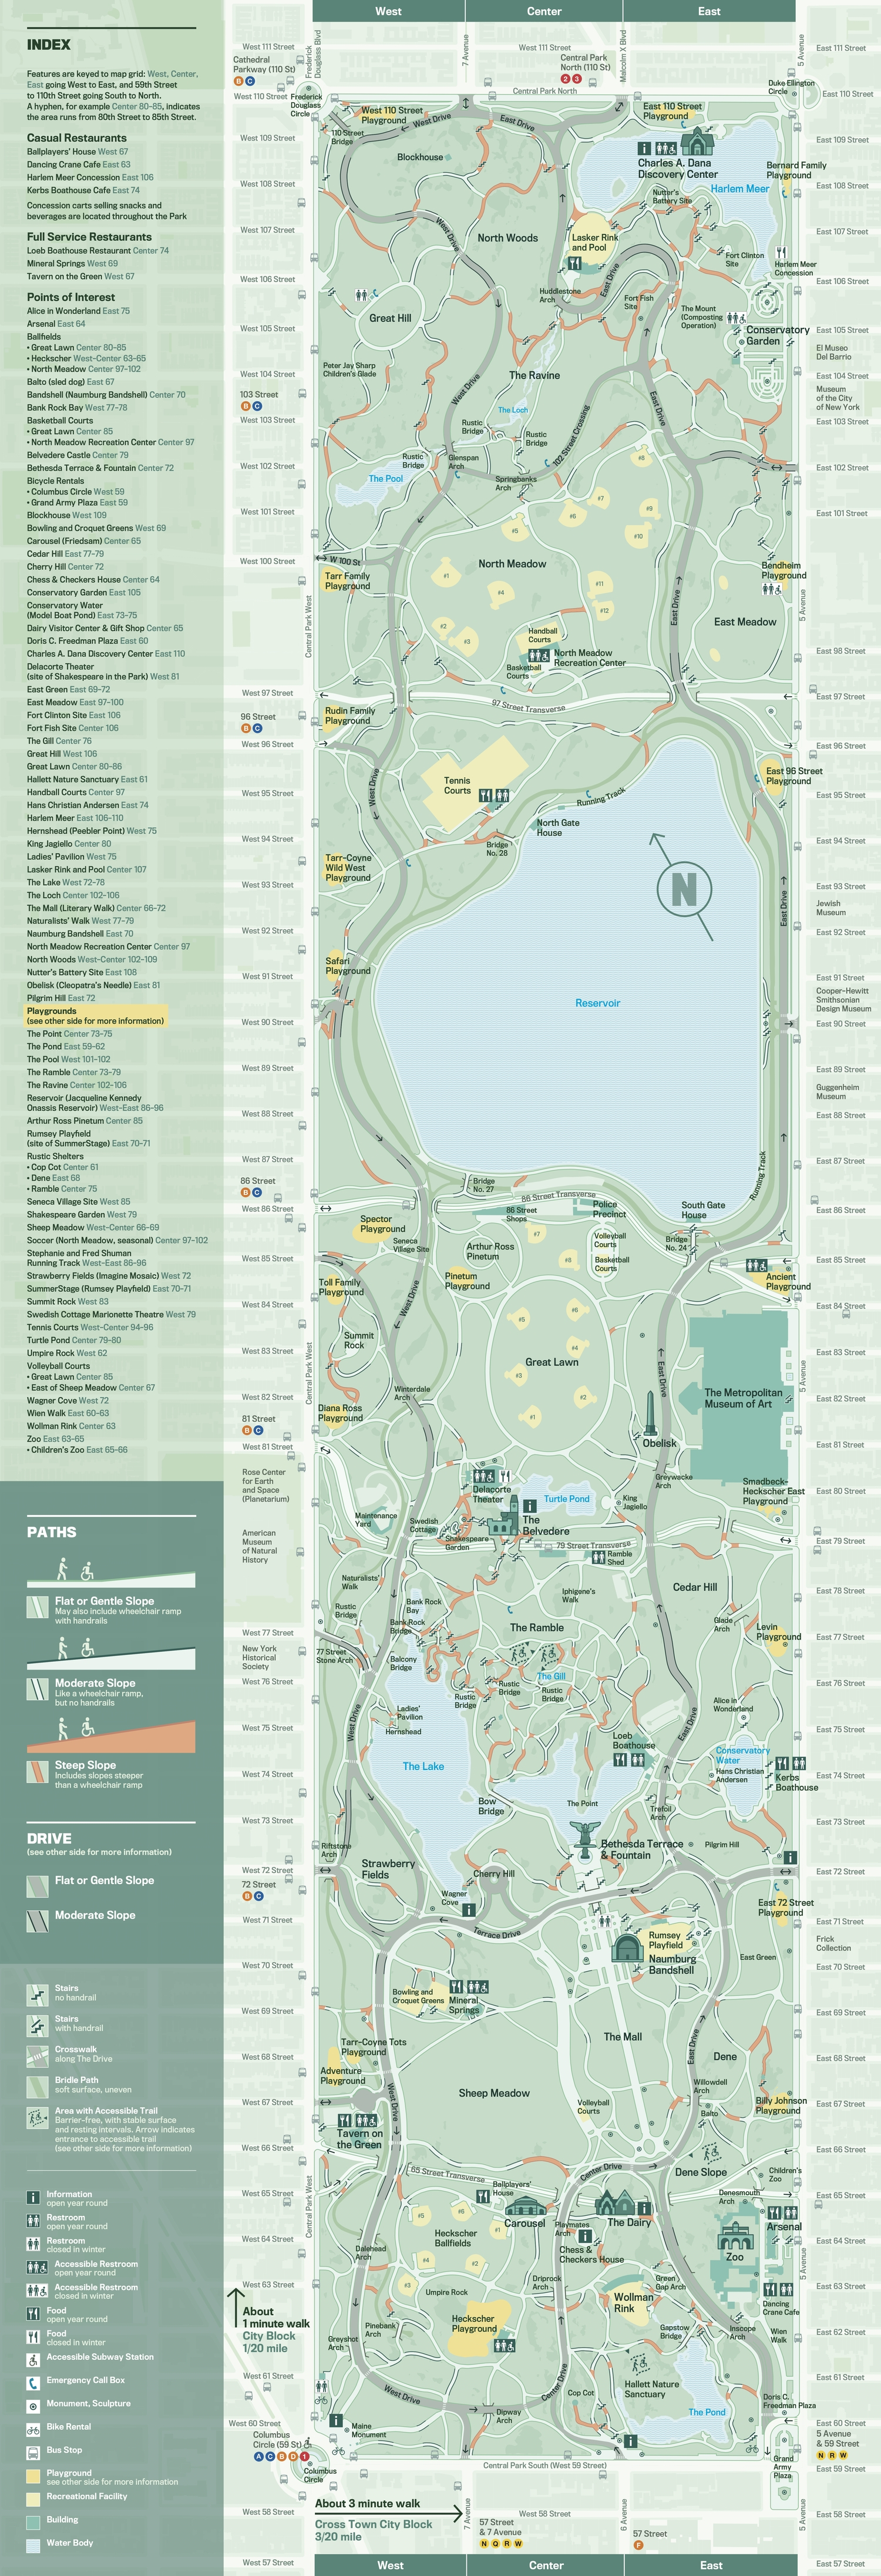 Central Park Released an Accessibility Map for Visitors With Limited on